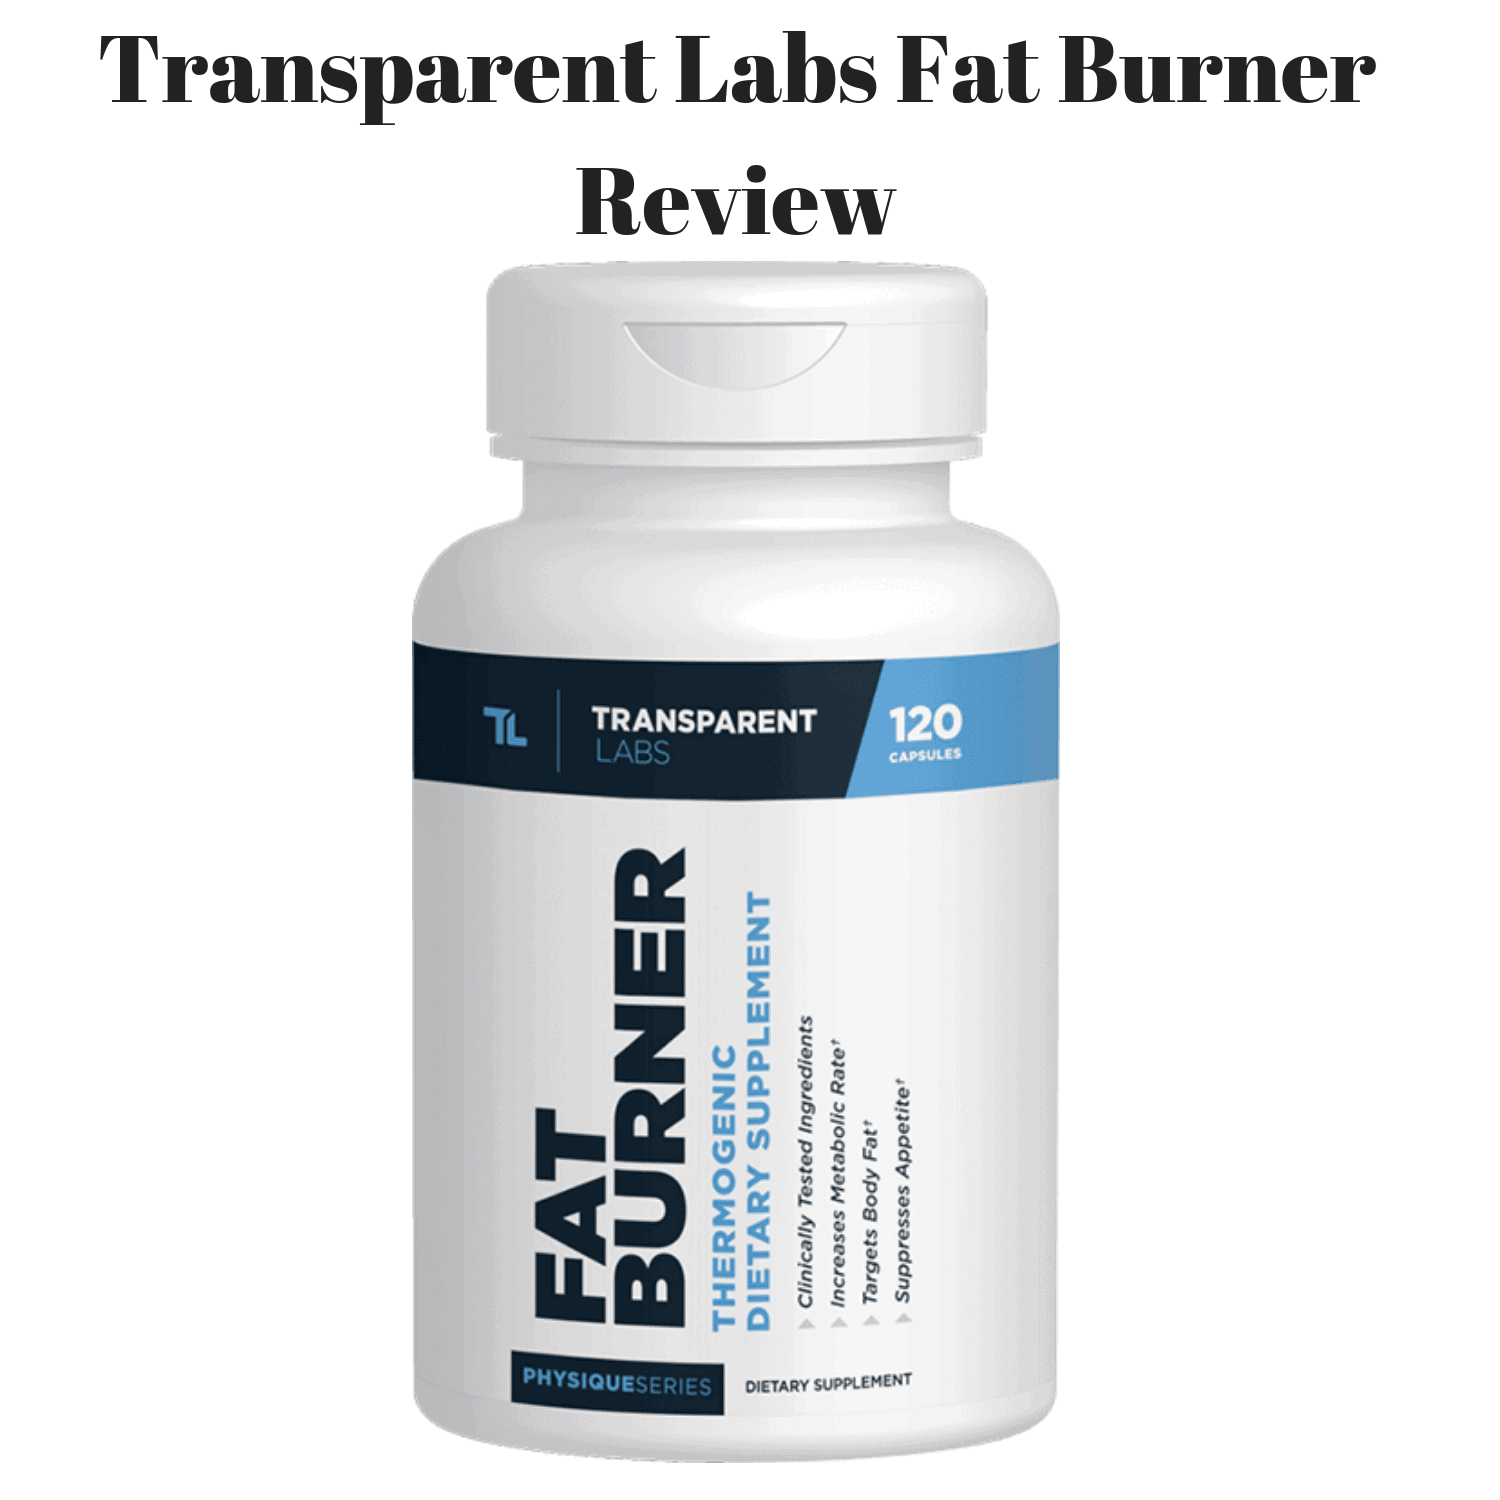 am burner bulk nutrients review